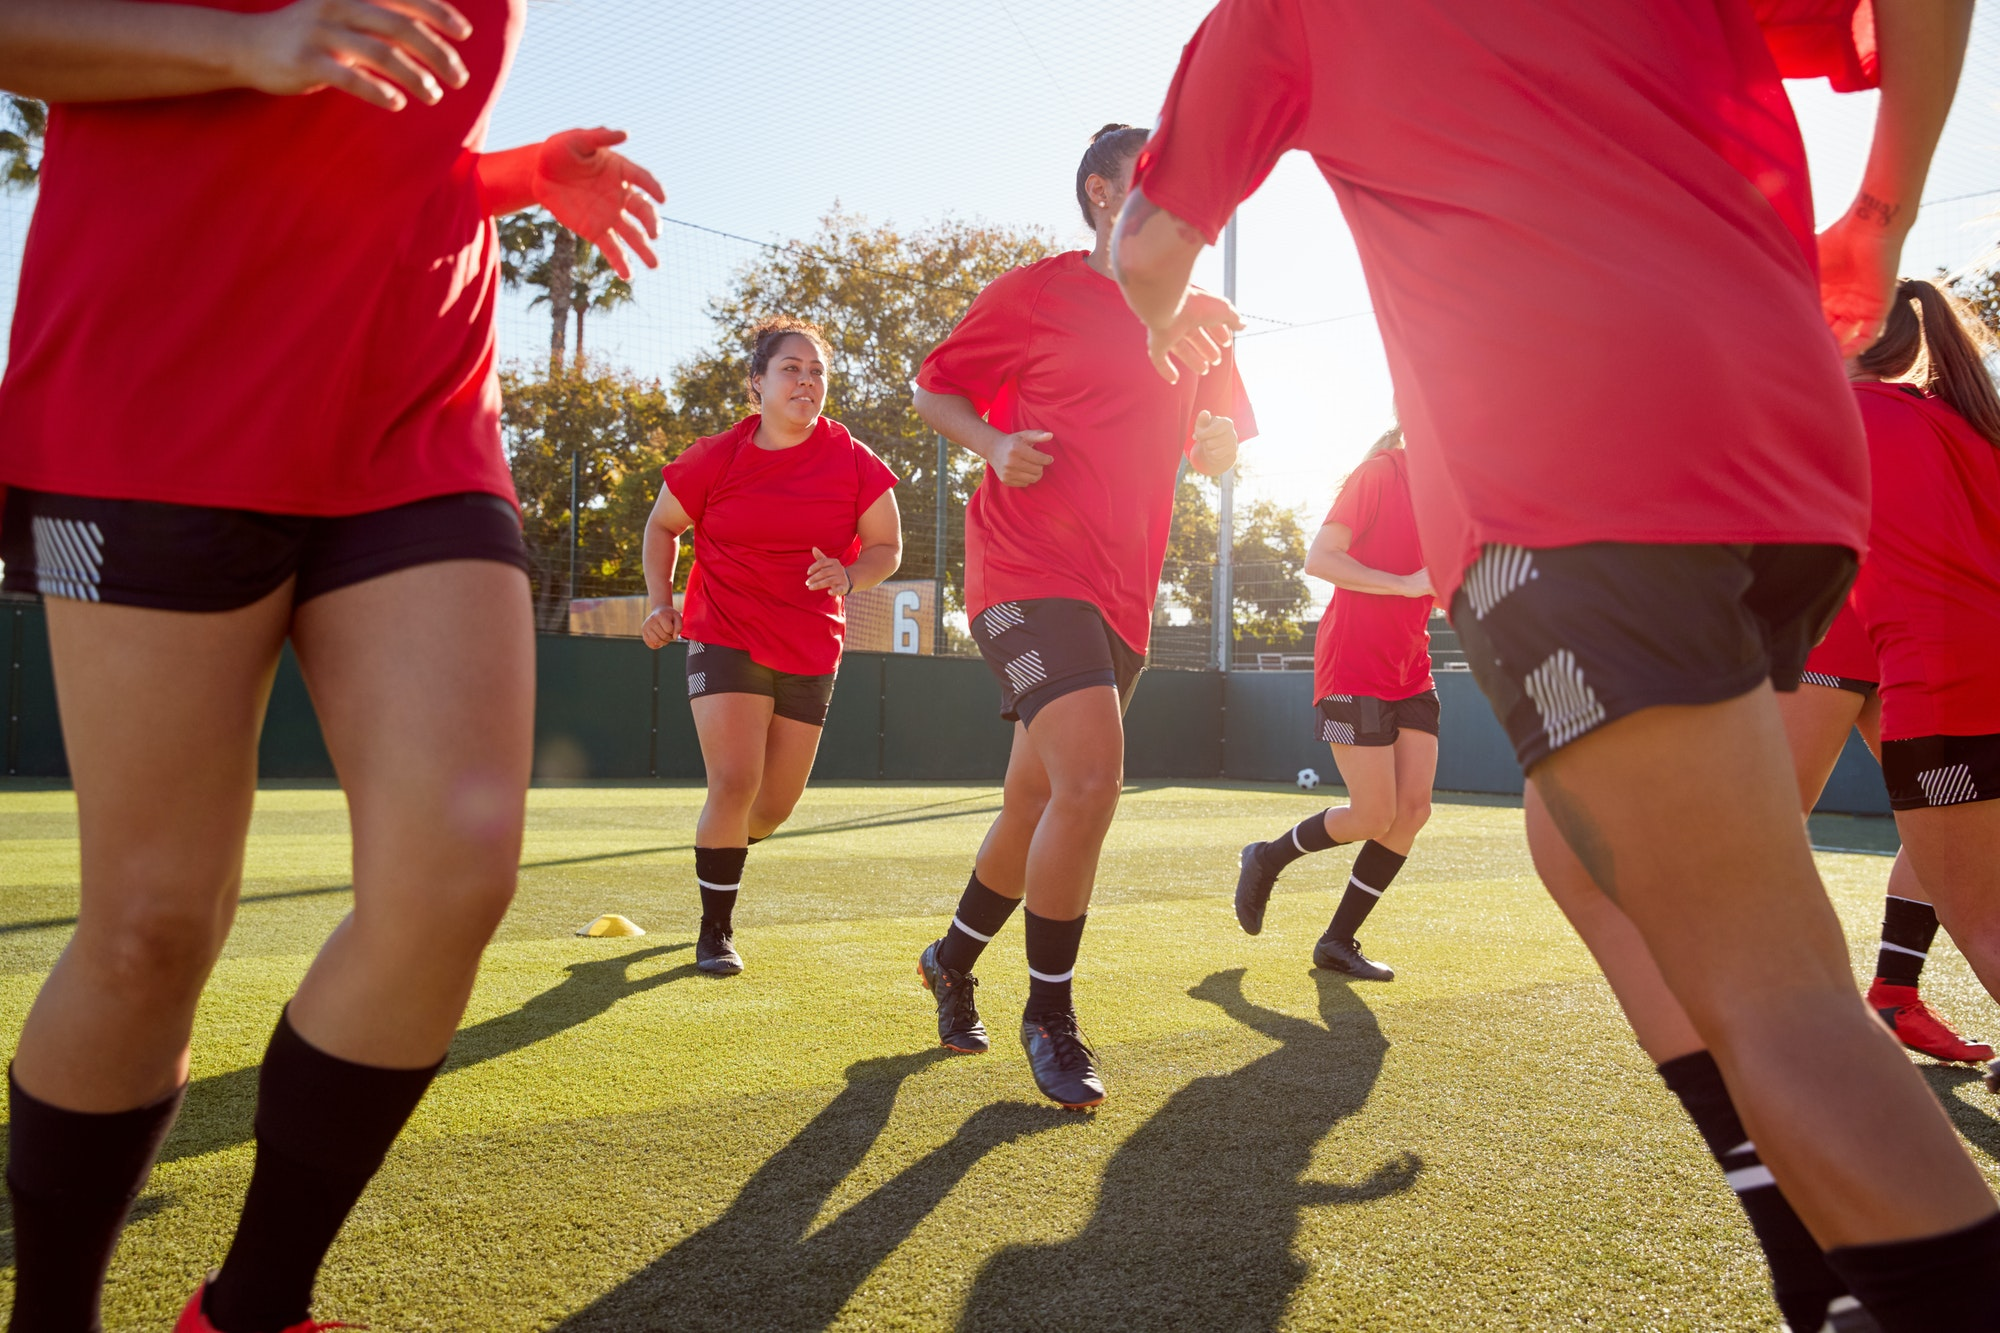 womens-football-team-run-whilst-training-for-soccer-match-on-outdoor-astro-turf-pitch.jpg